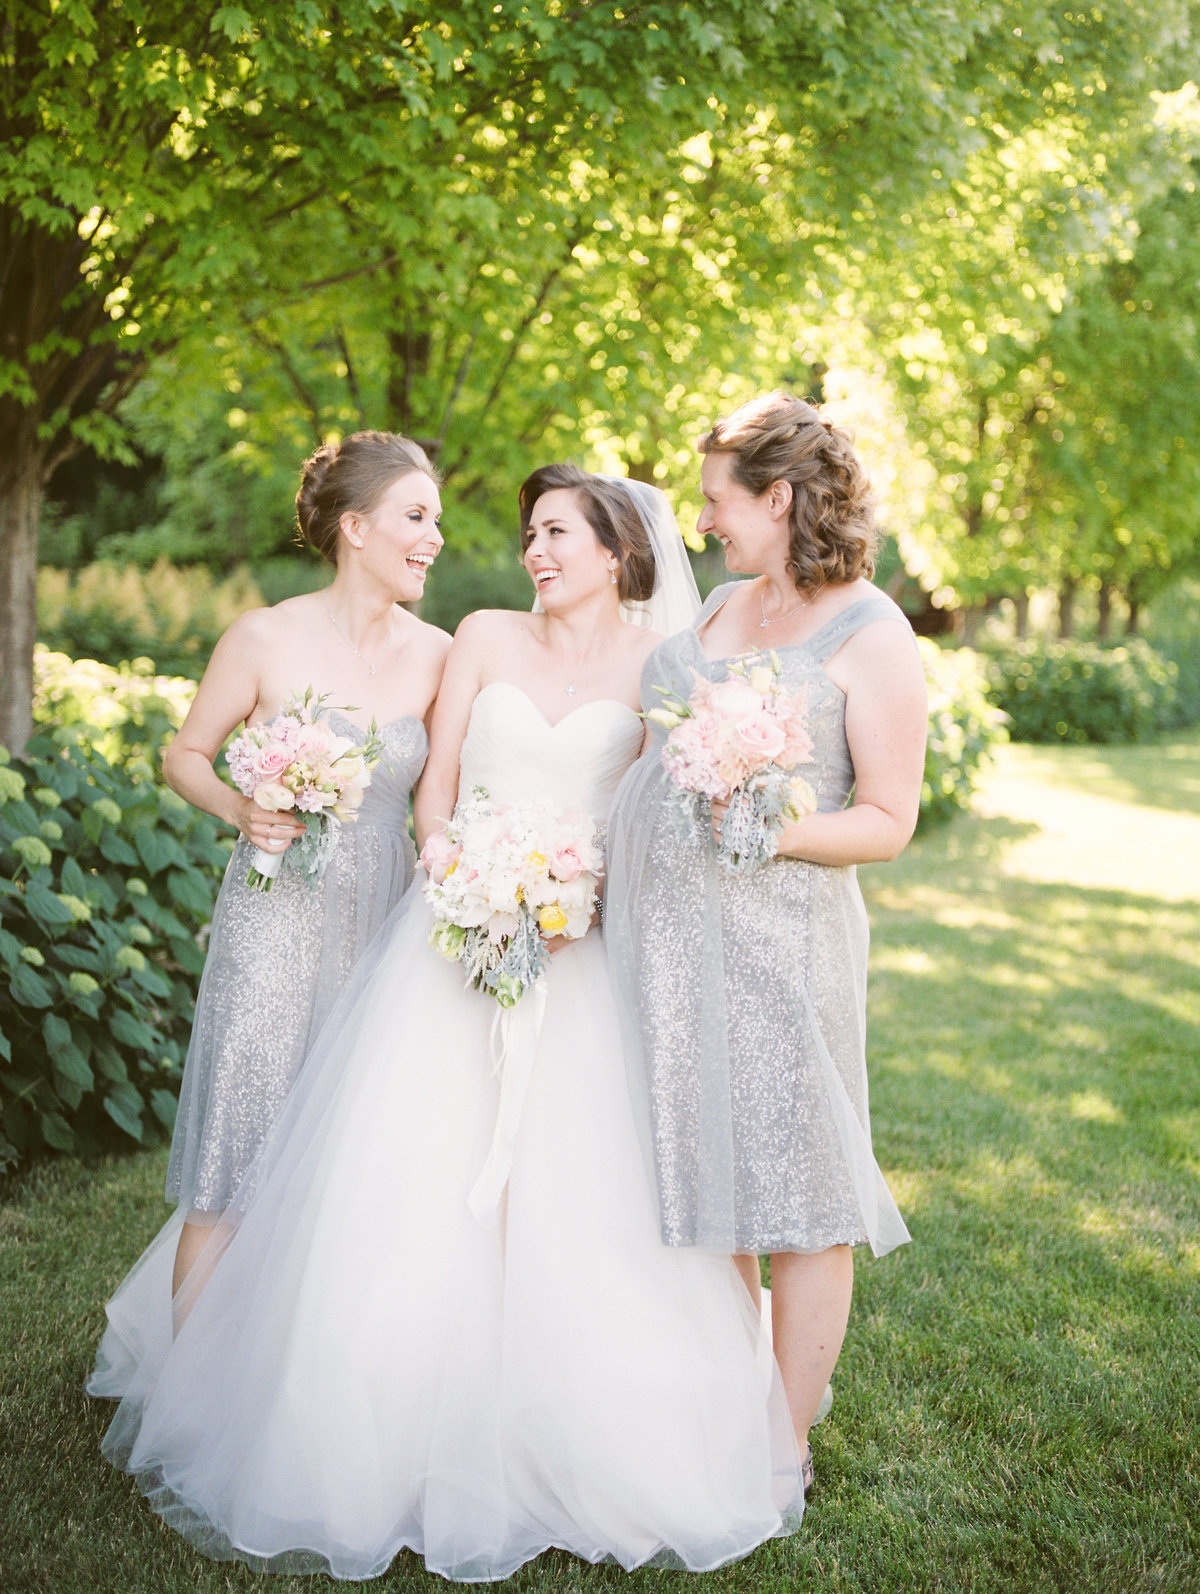 Pennington_BridalParty-43